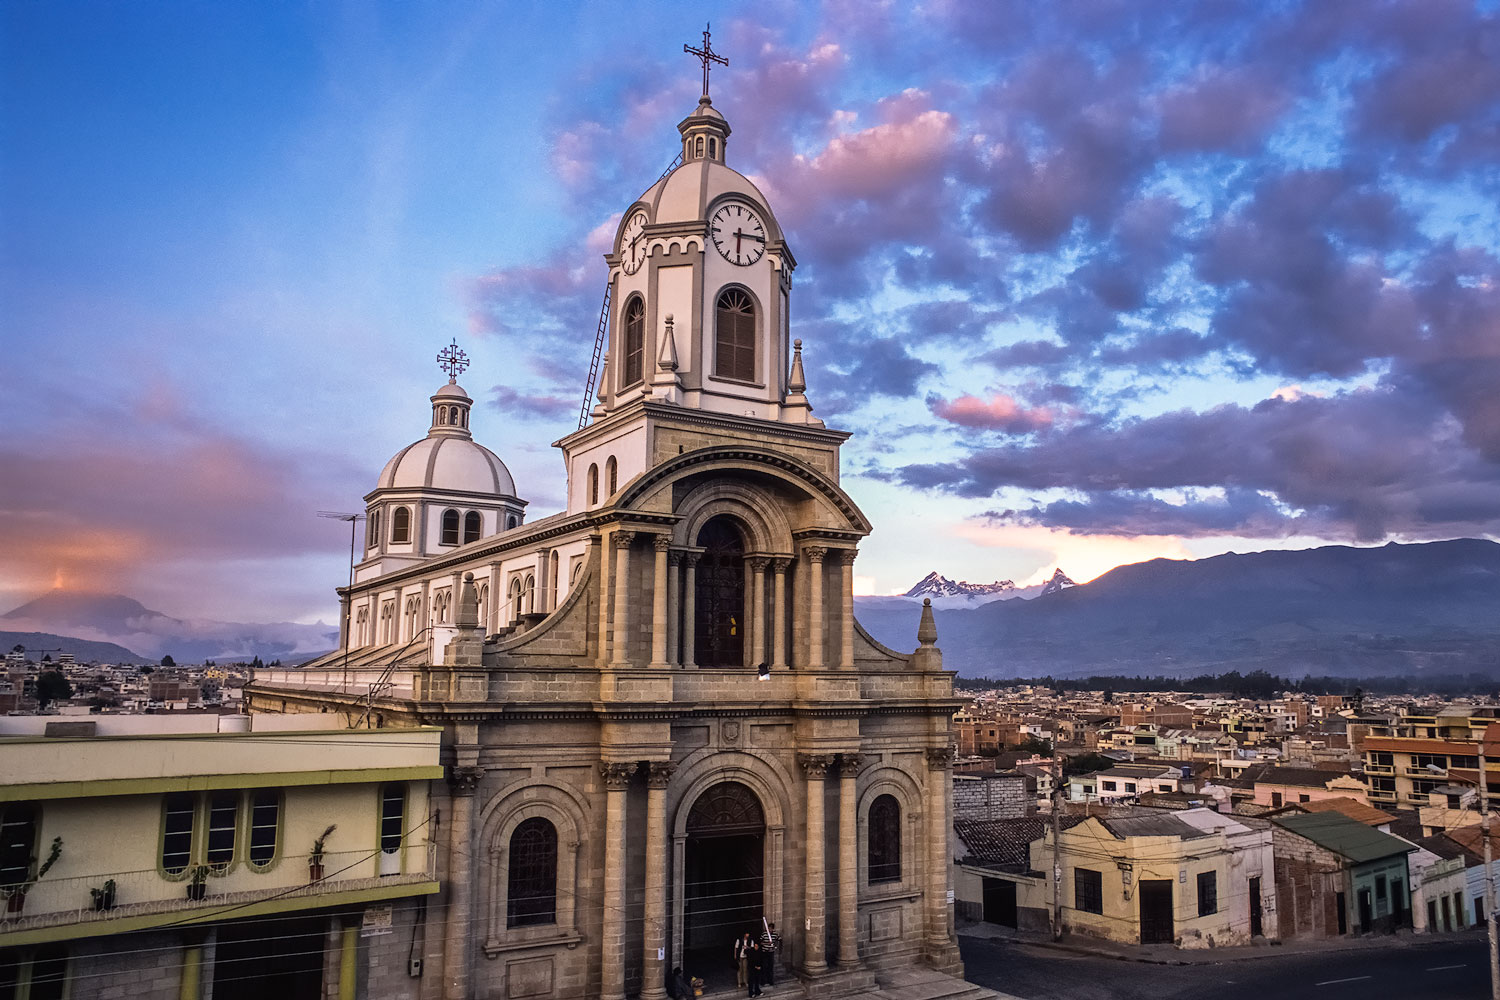 The Church and the Volcano